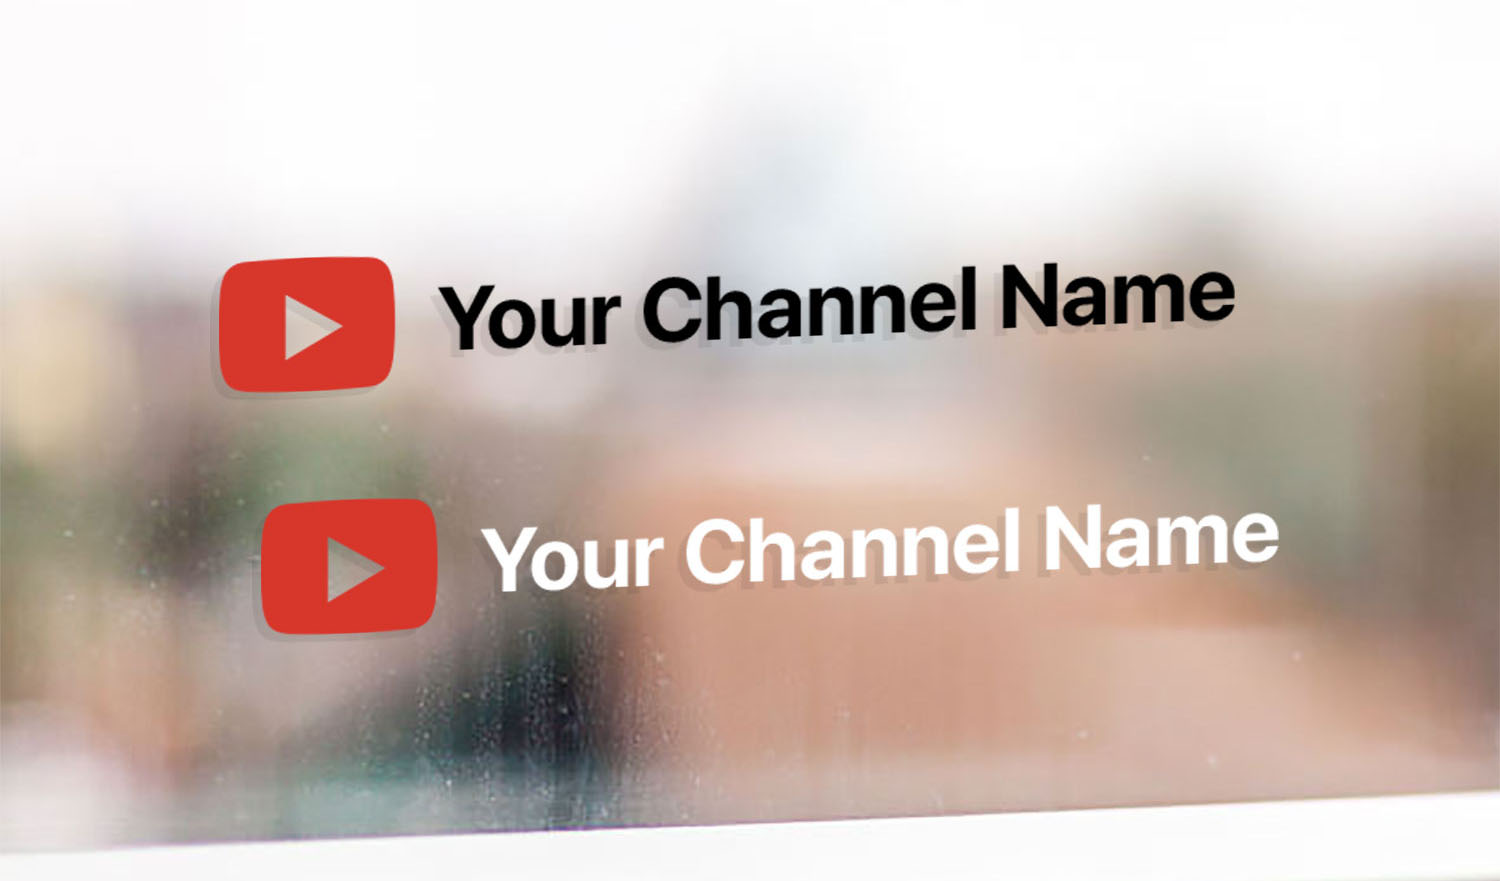 Personal YouTube channel name sticker